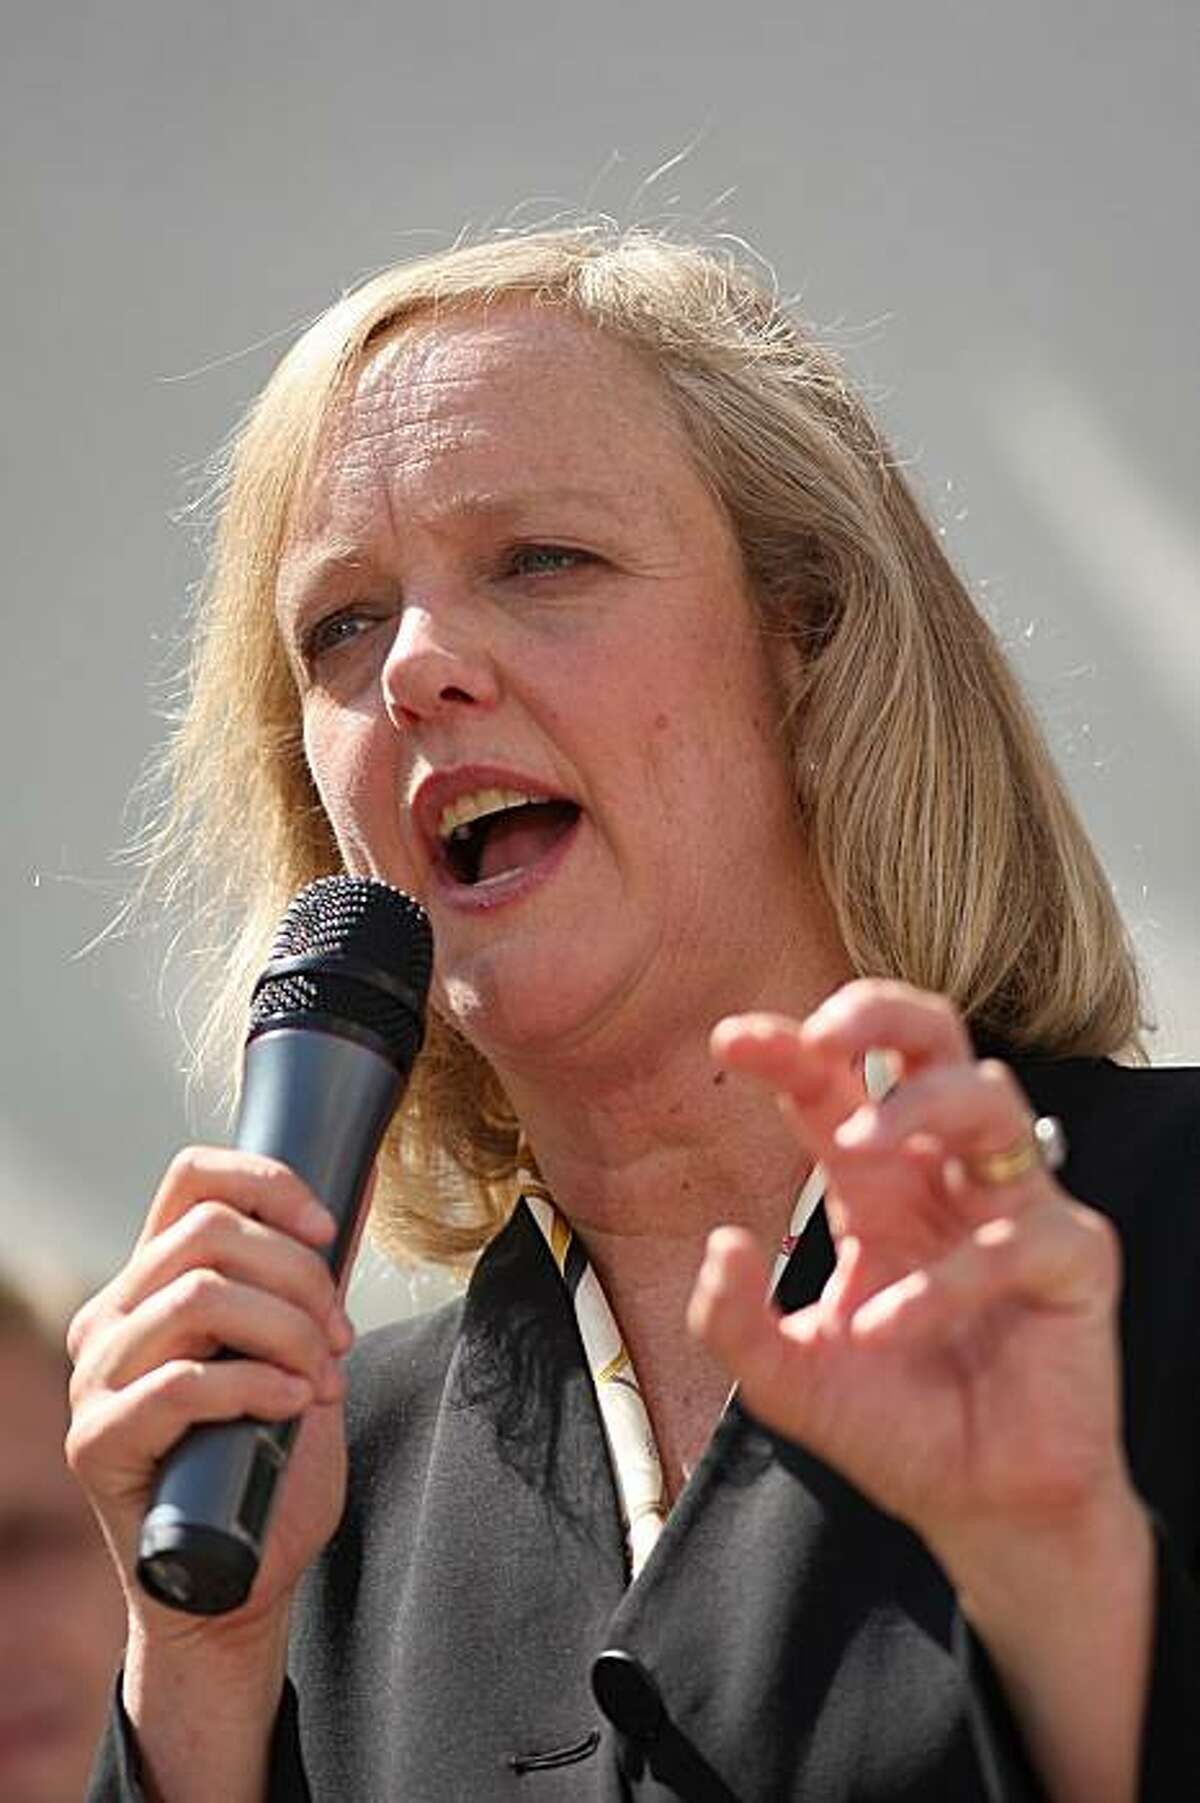 FULLERTON, CA - SEPTEMBER 22: Former eBay CEO Meg Whitman announces her candidacy for the 2010 Republican gubernatorial nomination on September 22, 2009 in Fullerton, California. Whitman will vie for the Republican nomination with state Insurance Commissioner Steve Poizner and former U.S. Rep. Tom Campbell. Gov. Arnold Shwarzenegger is prevented from running again under term limits. Whitman has already received the endorsement of former Republican Gov. Pete Wilson, who will serve as her campaign chairman. (Photo by David McNew/Getty Images)